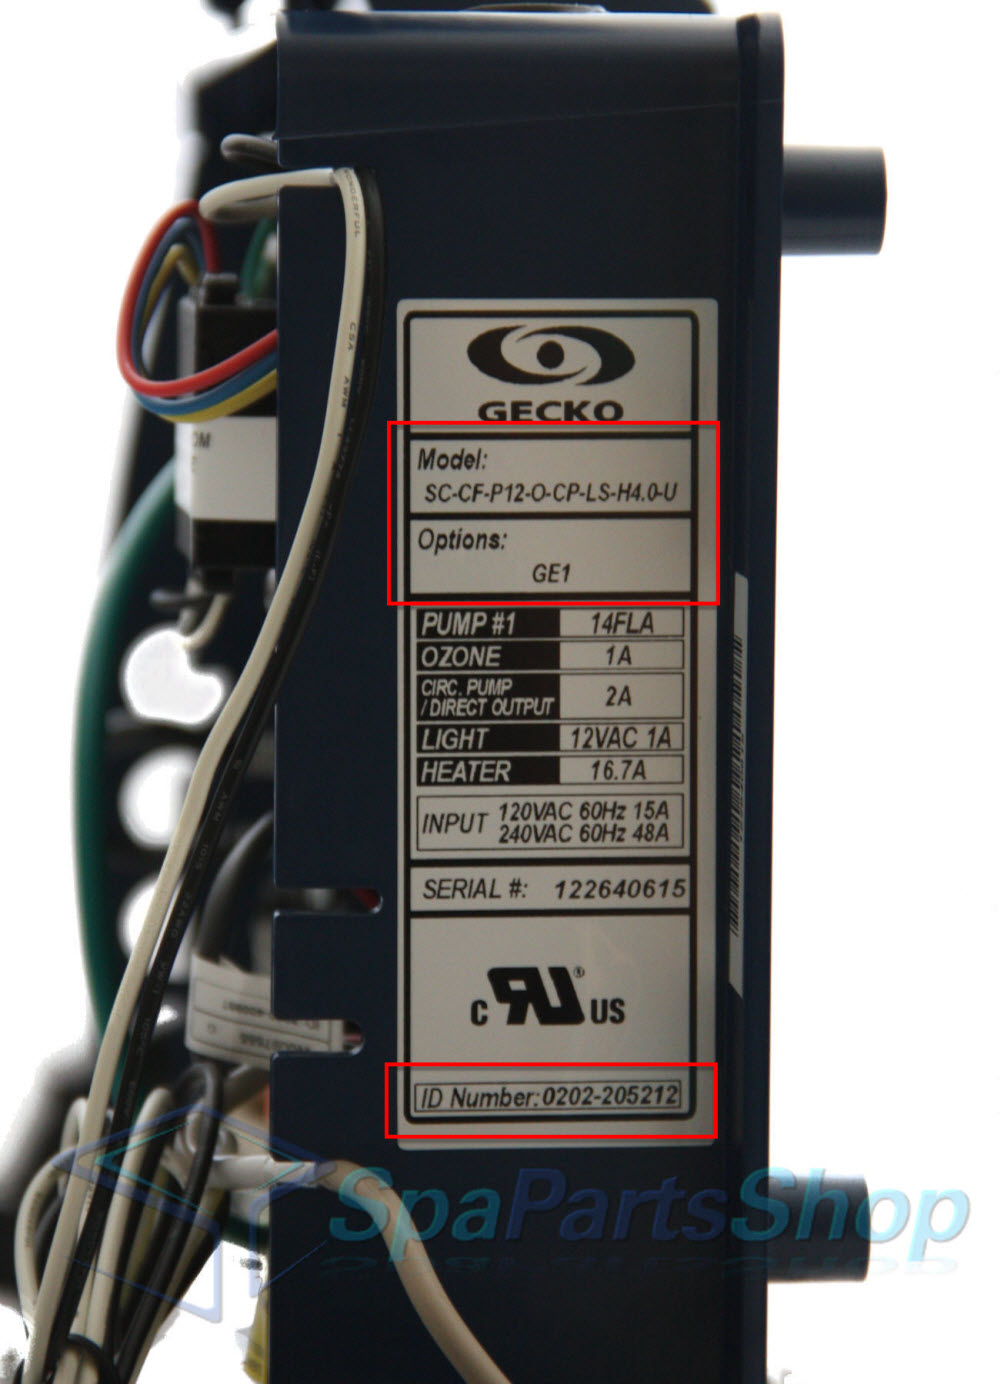 Gecko manufactures spa controls for spa companies so your 'branded' control  box could likely be Gecko!